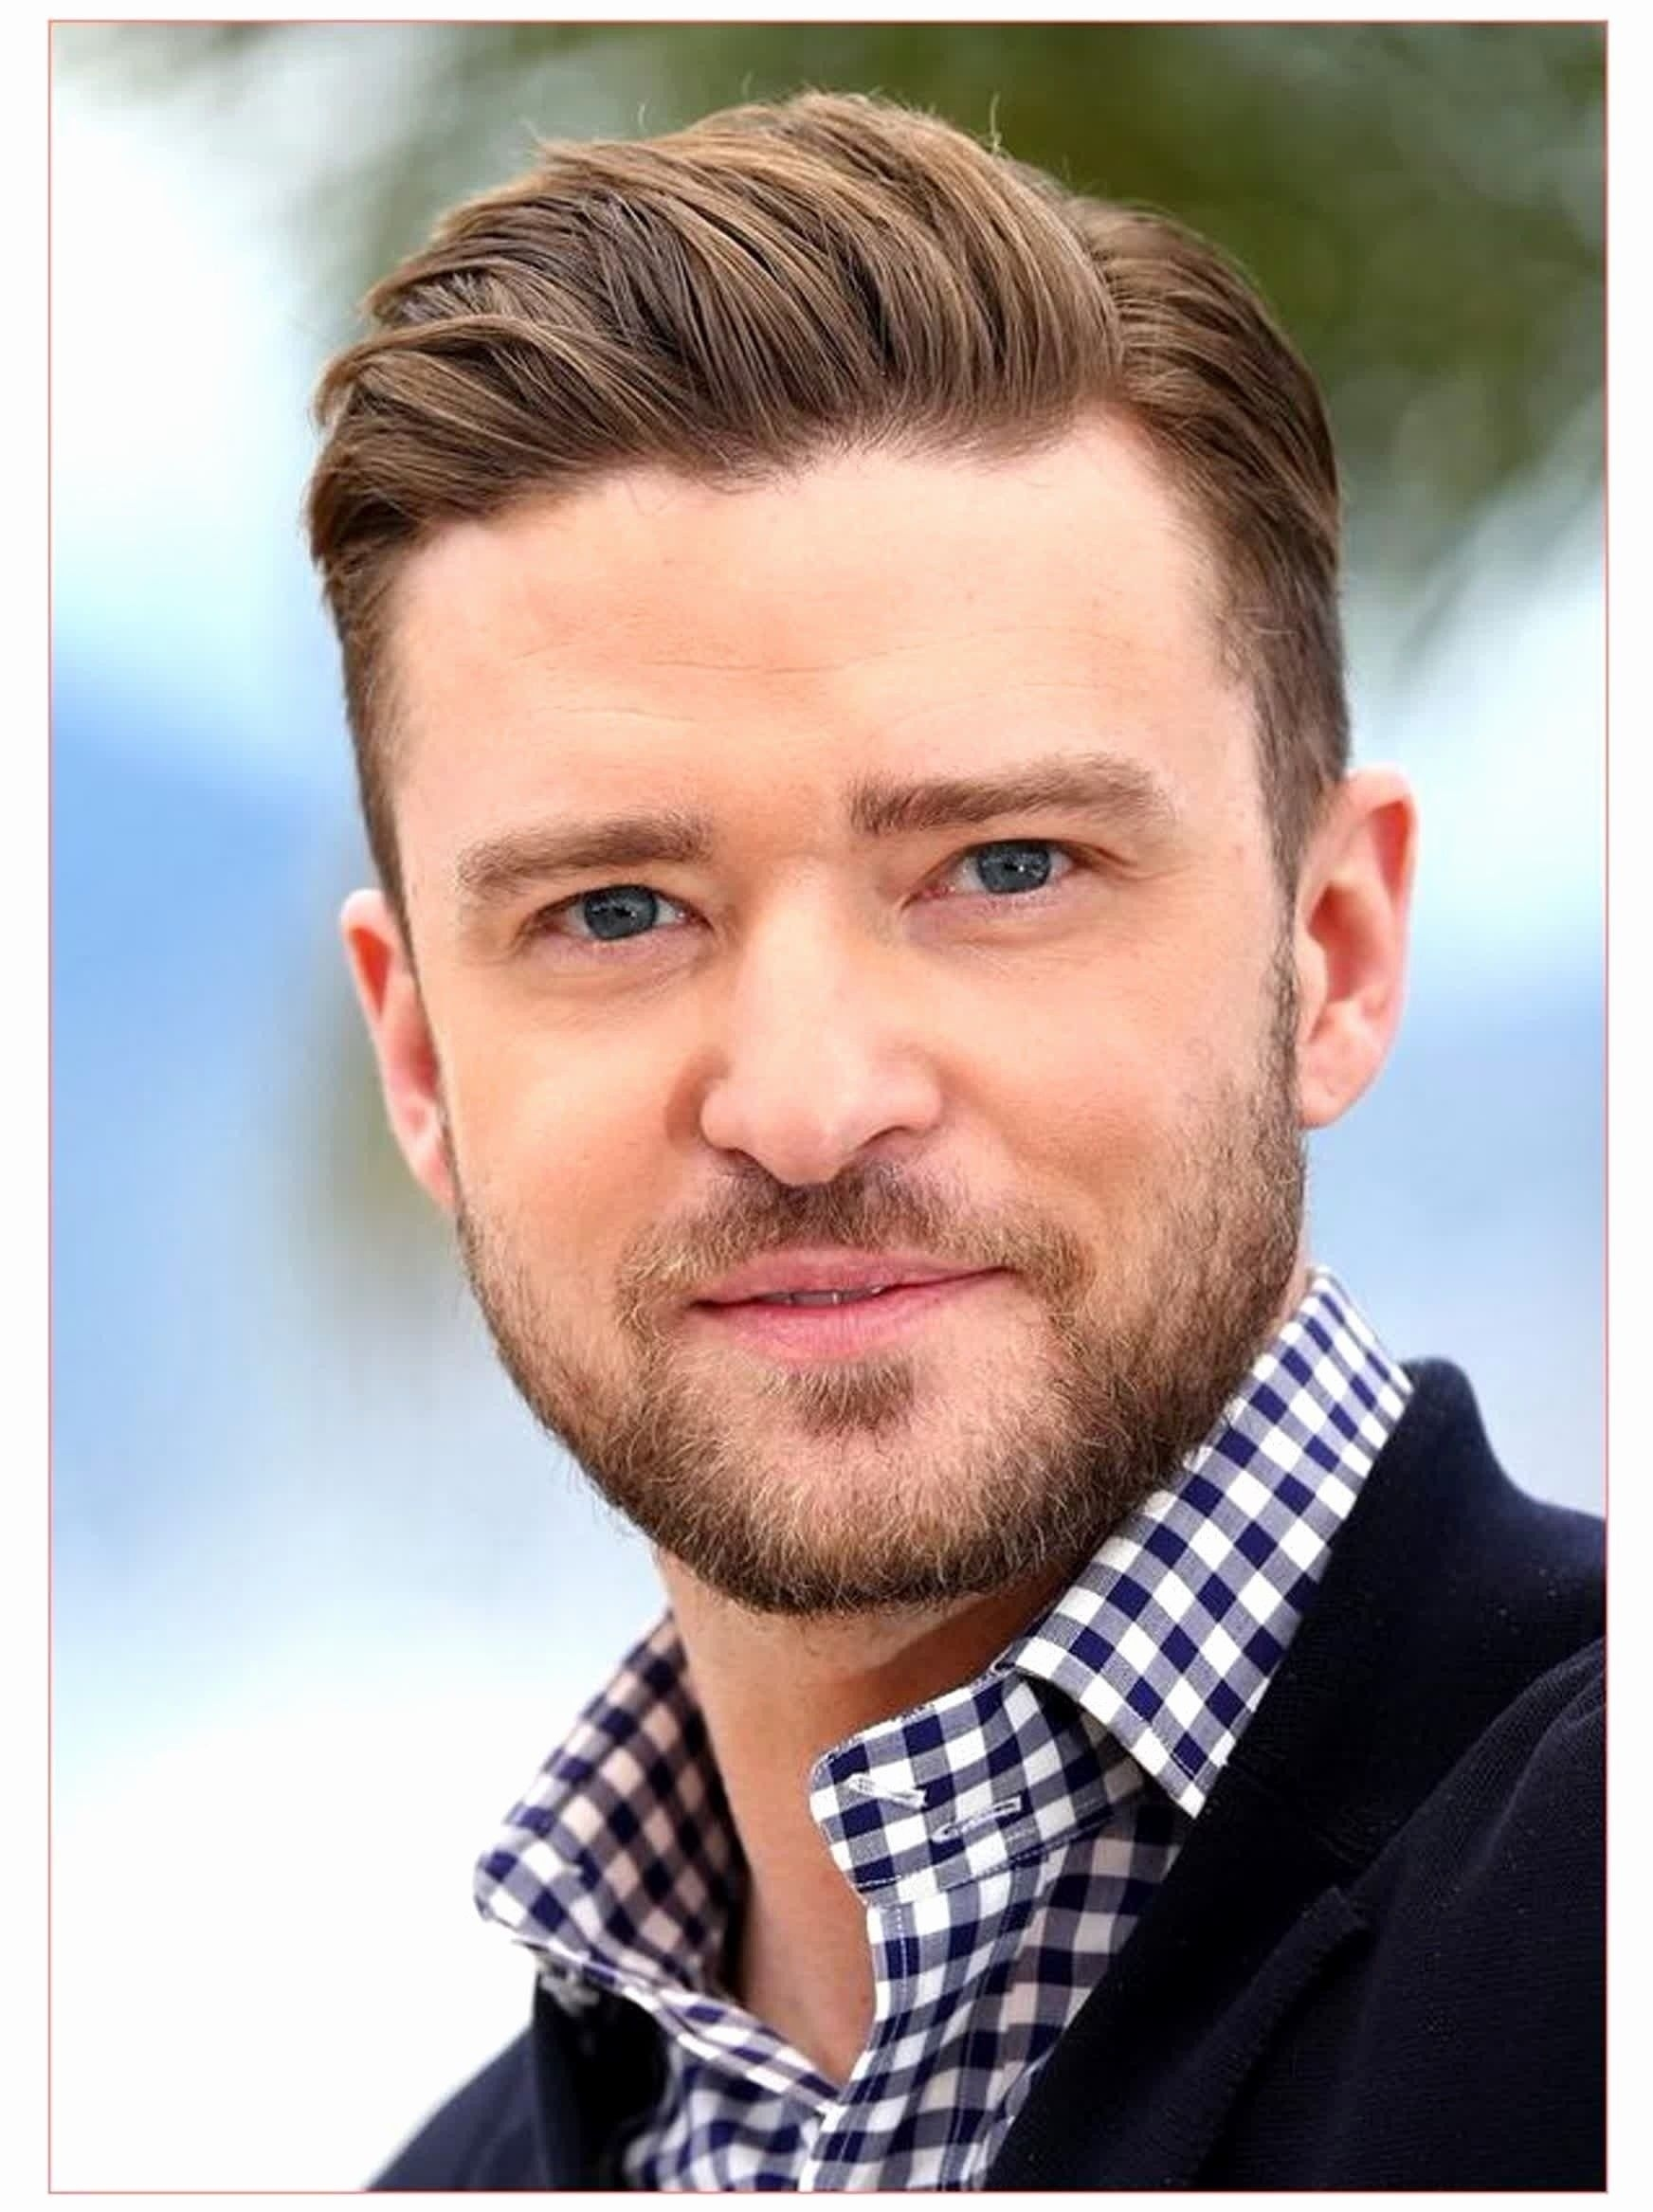 Hairstyle For 40 Year Old Man   Hairstyles 40   Hipster in Forty Year Old Men Hair Cuts